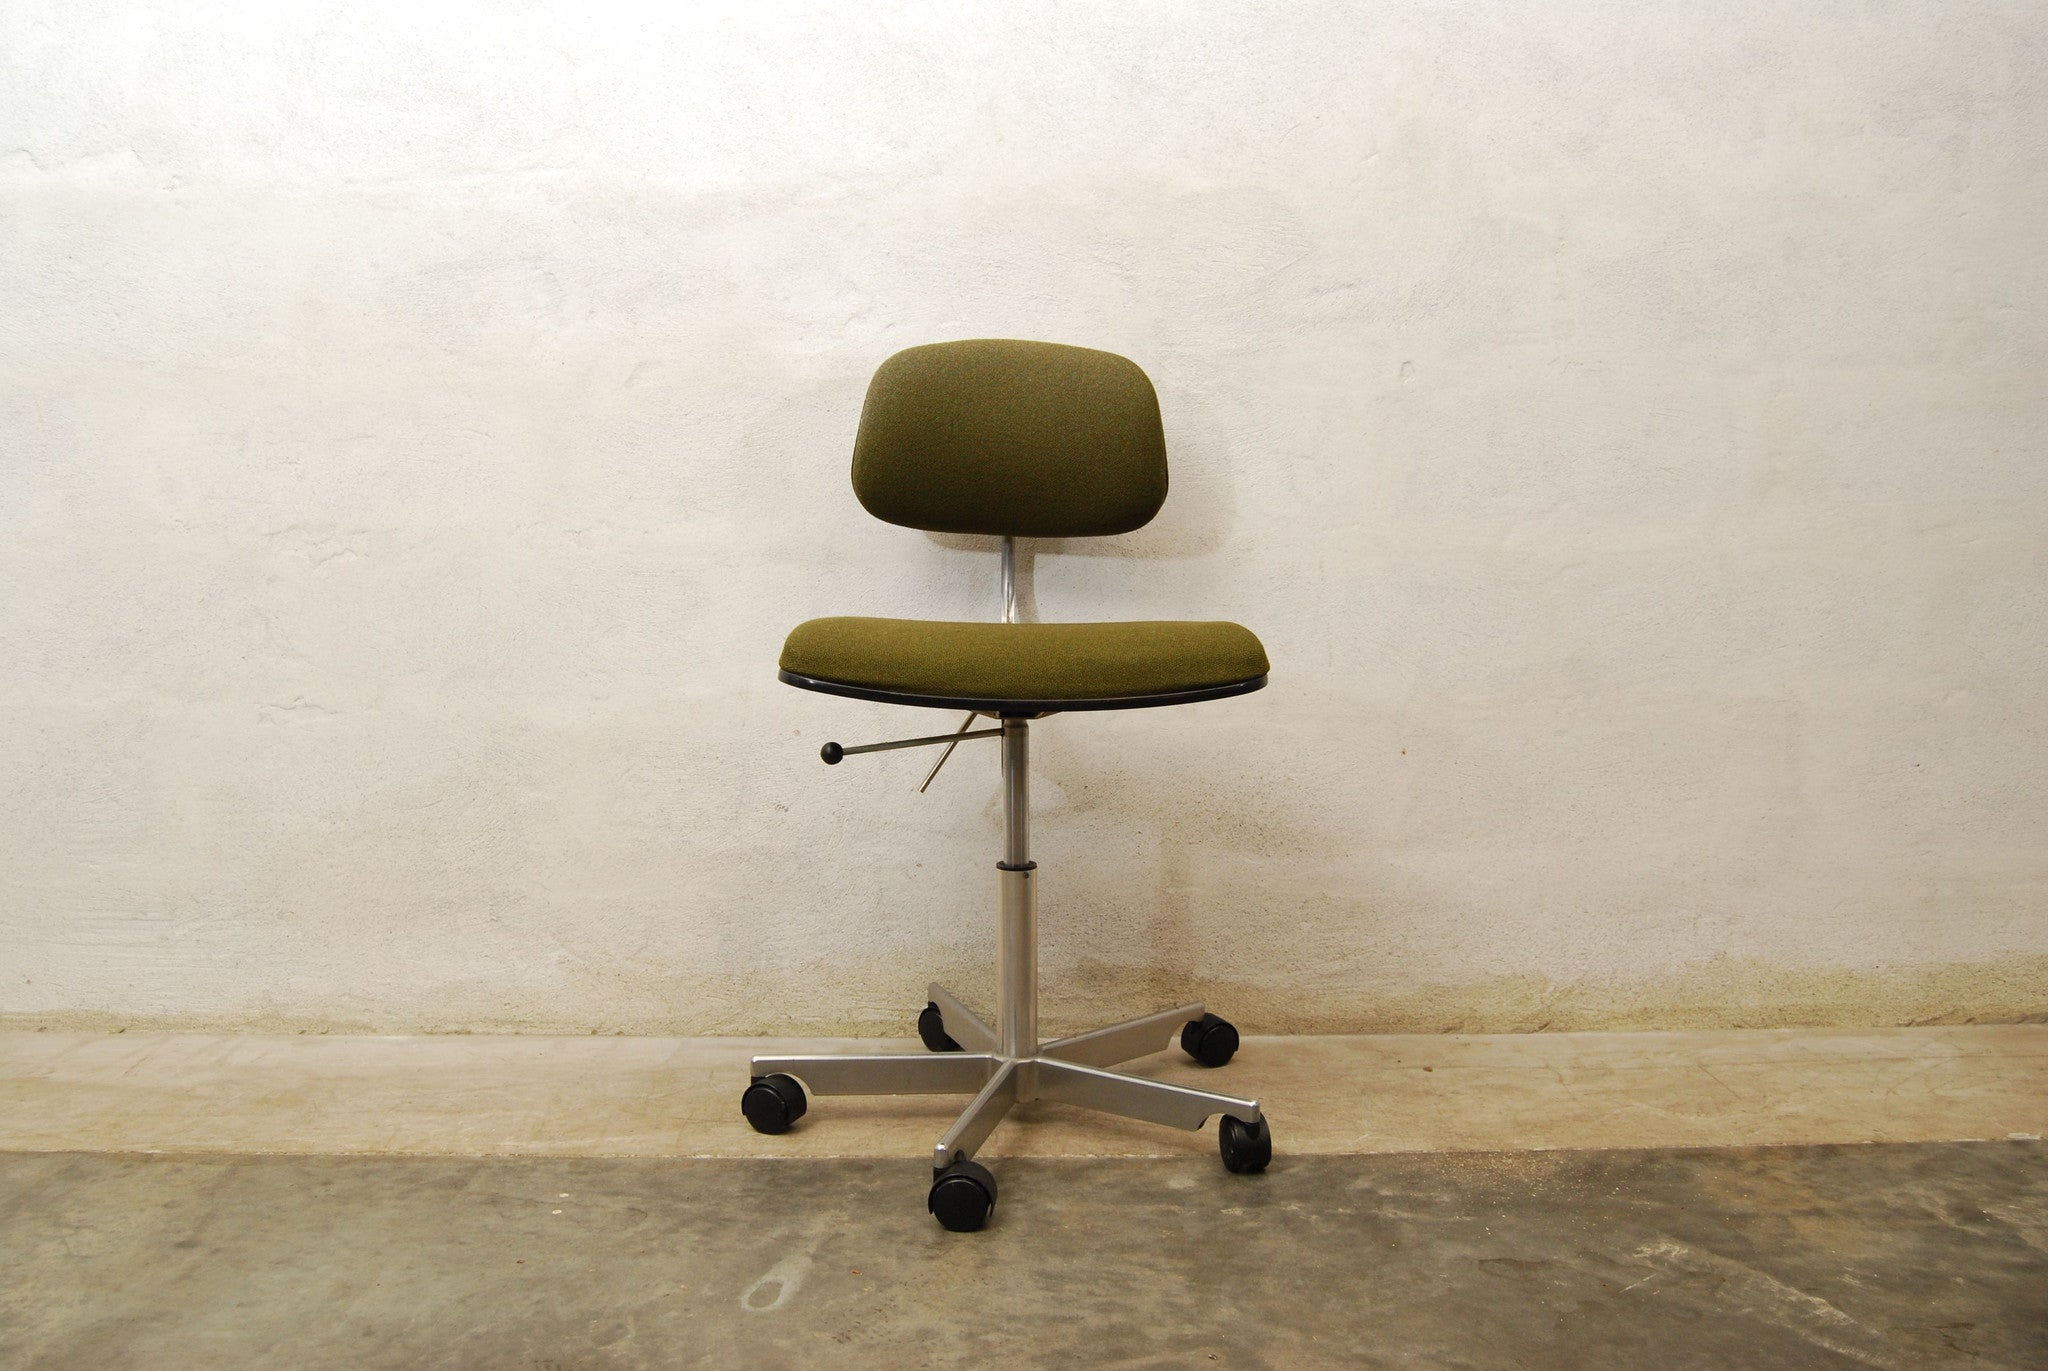 Desk chair by KEVI